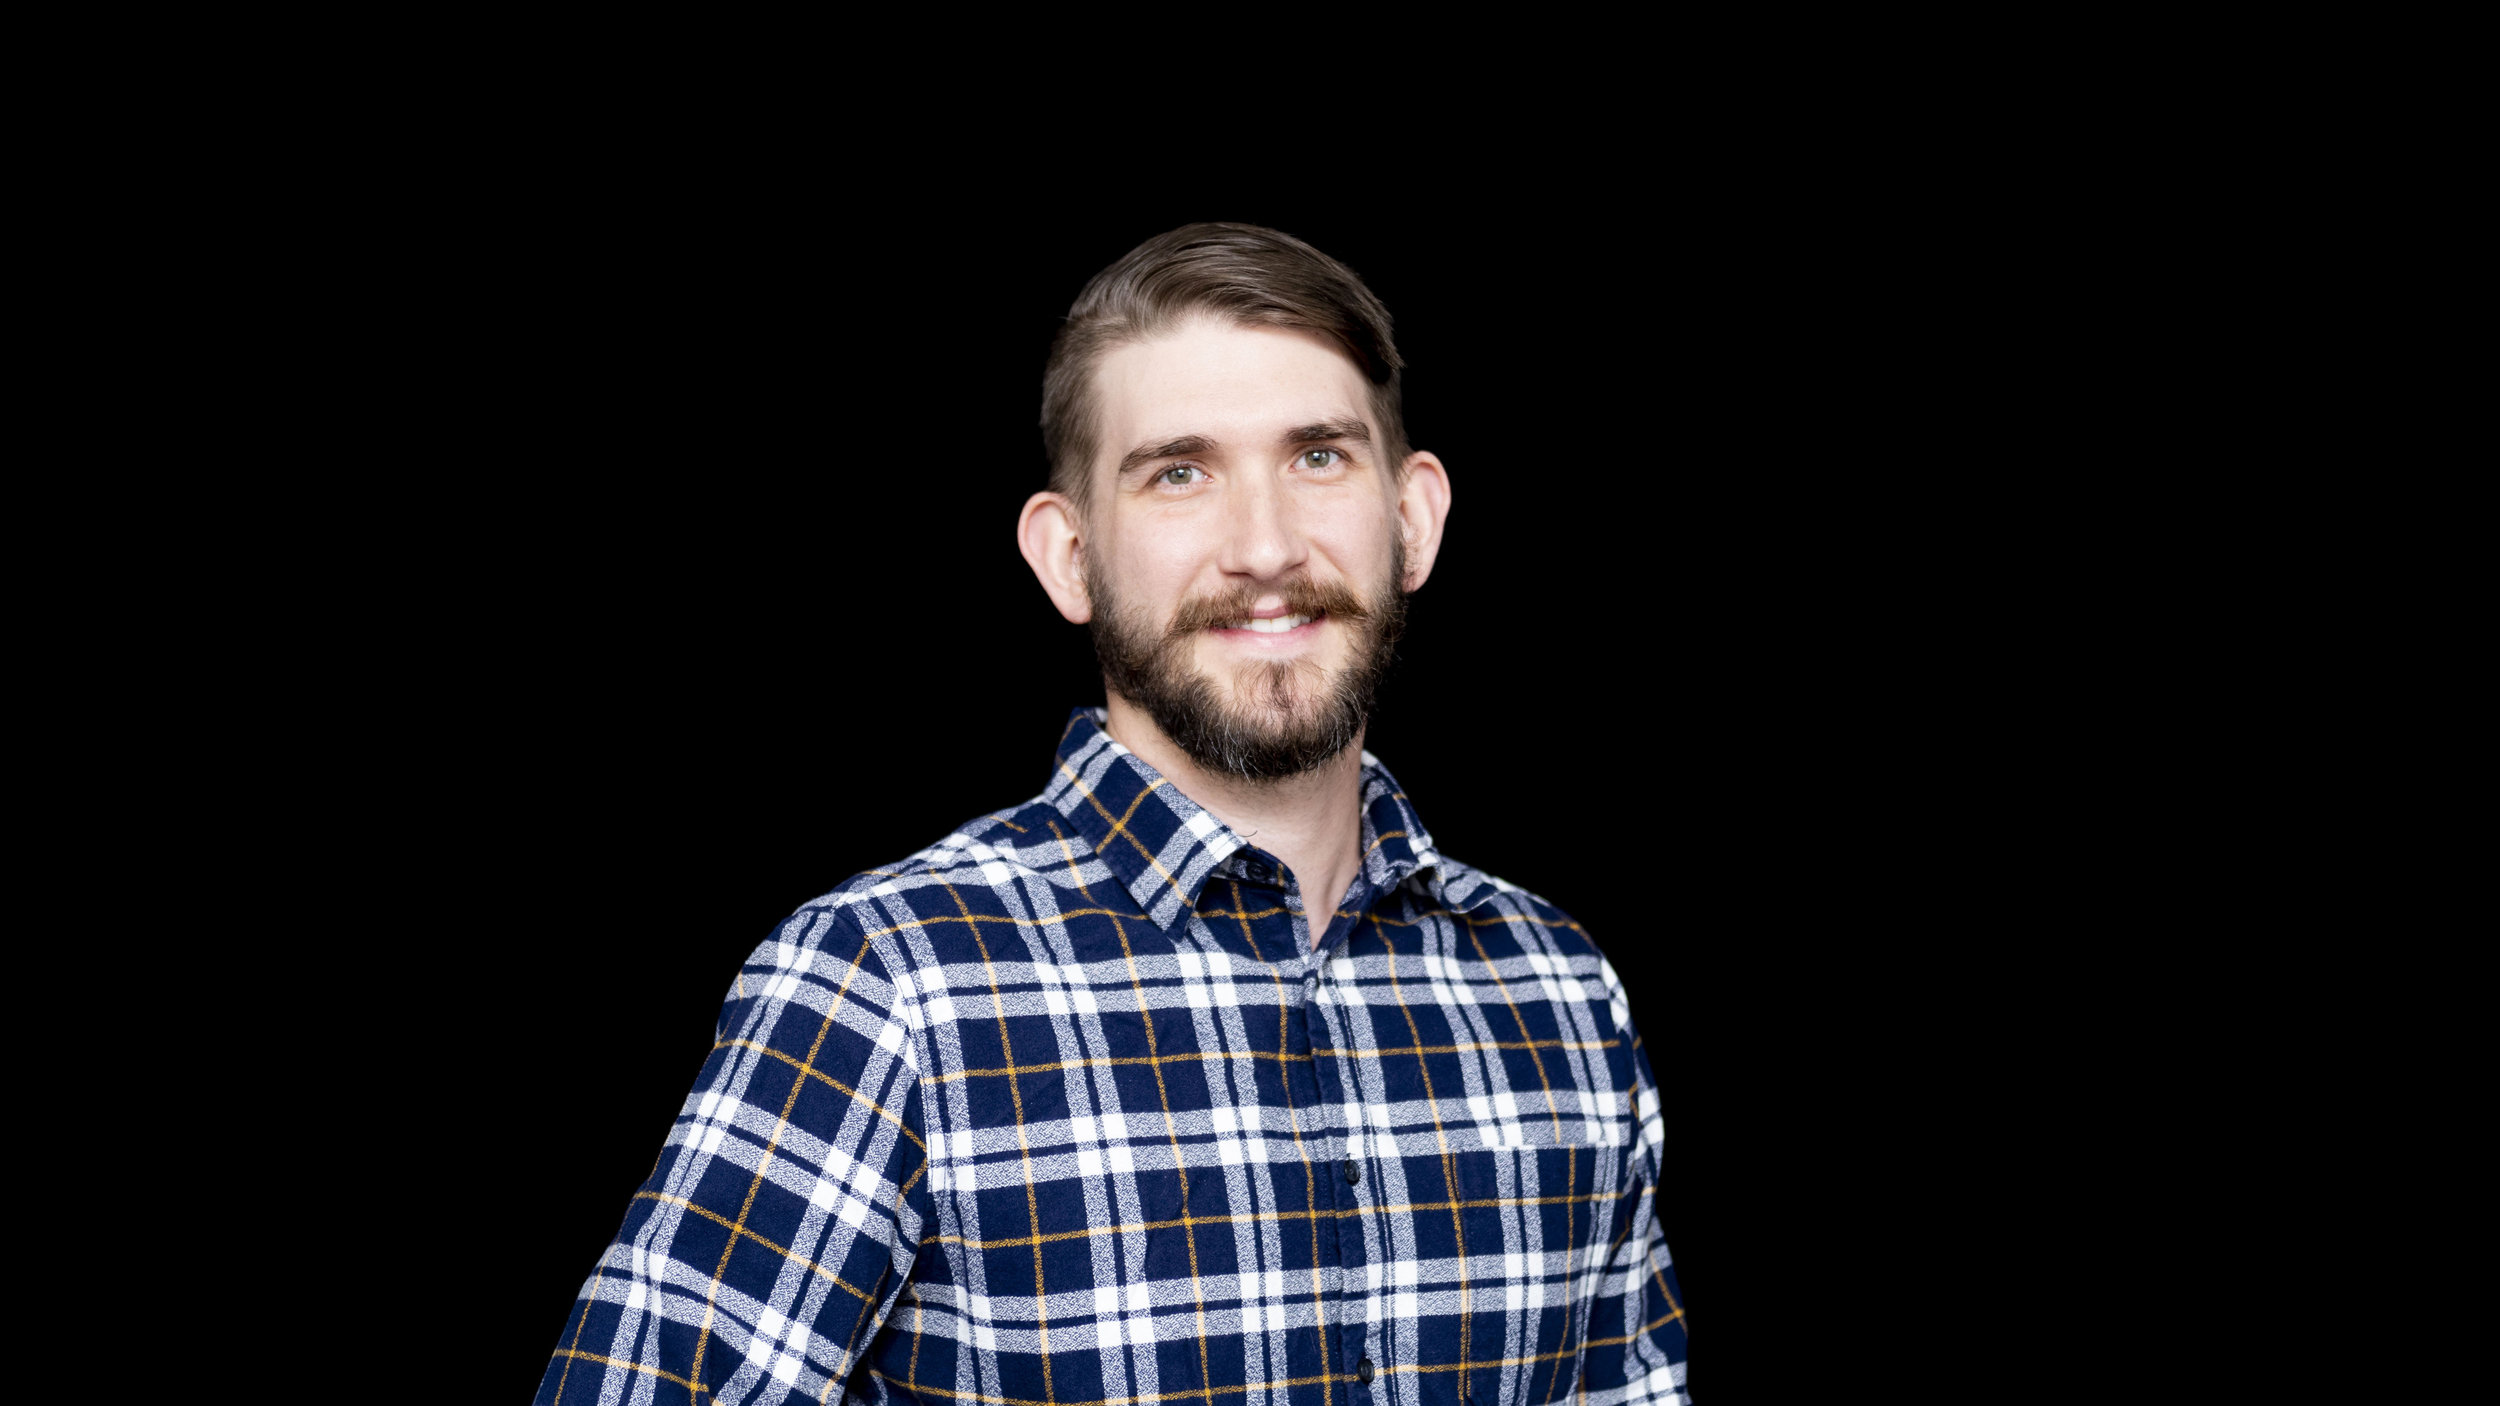 RYAN CUMMINS   VFX / VR / AR SUPERVISOR